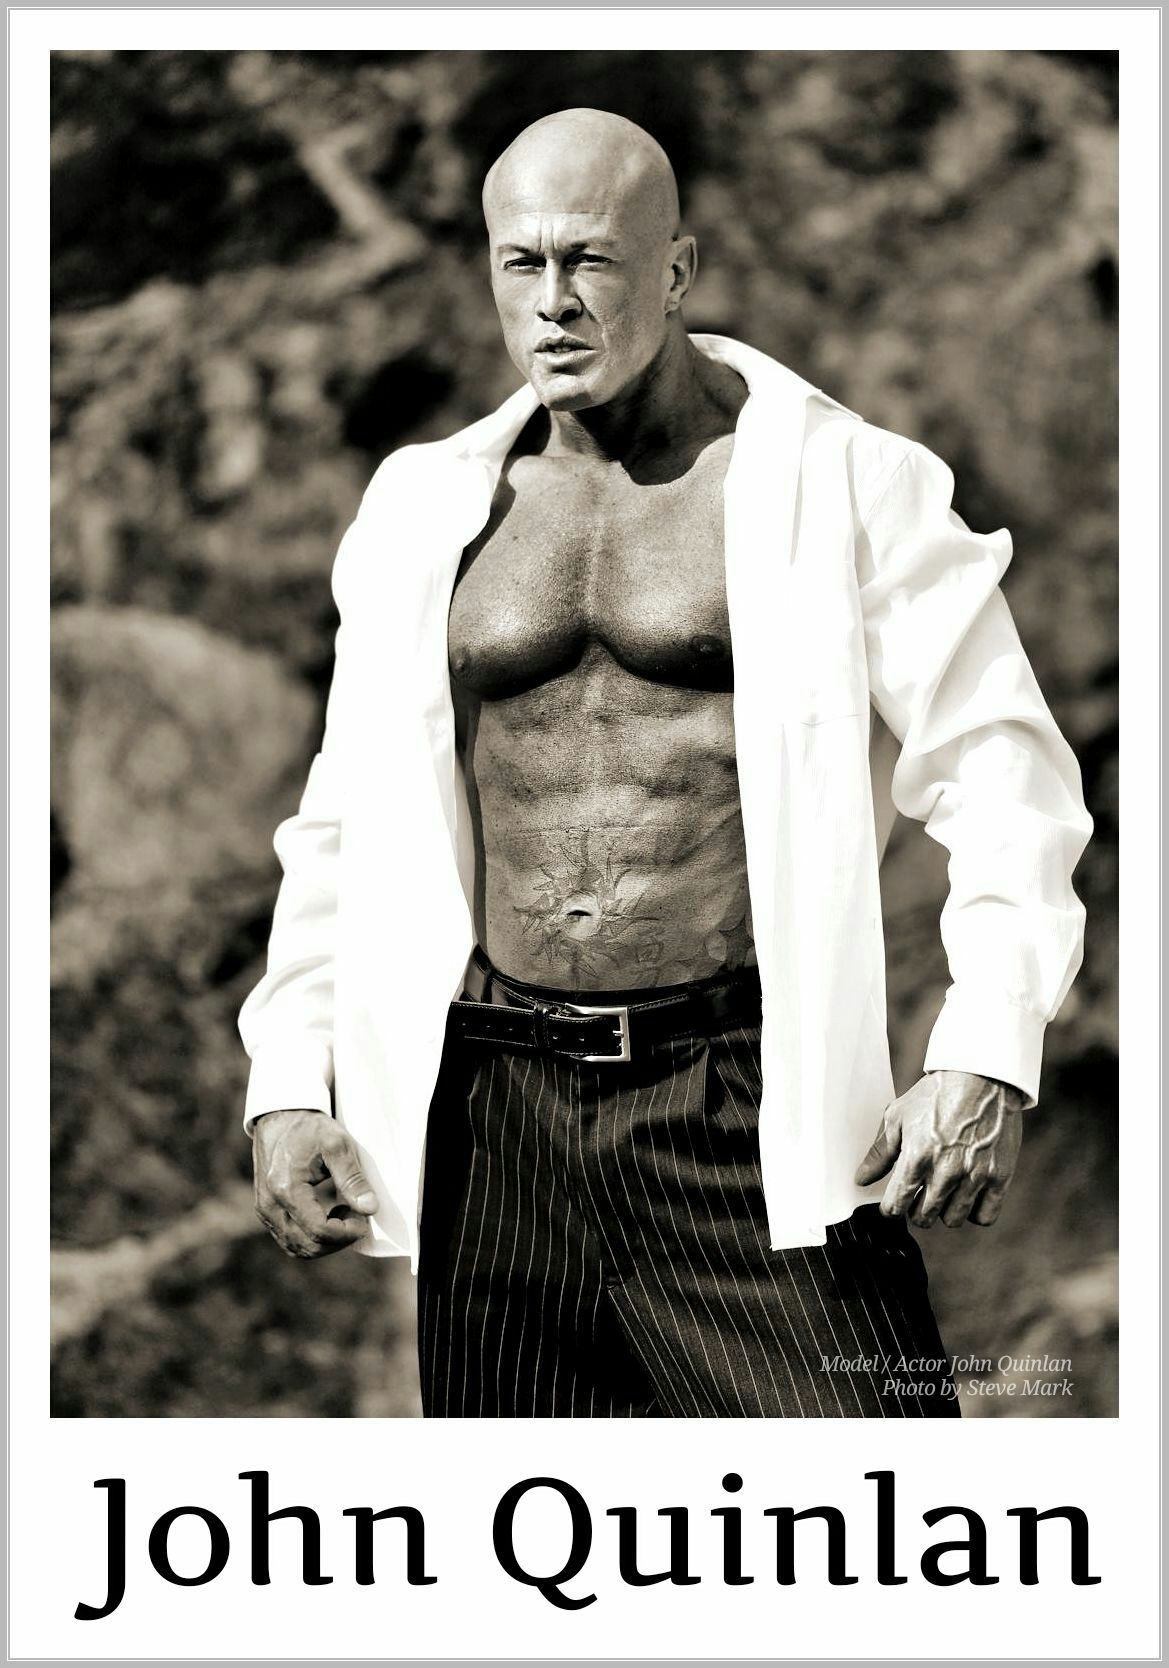 Model & Actor John Joseph Quinlan Character Promo by Steve Mark #JohnQuinlan